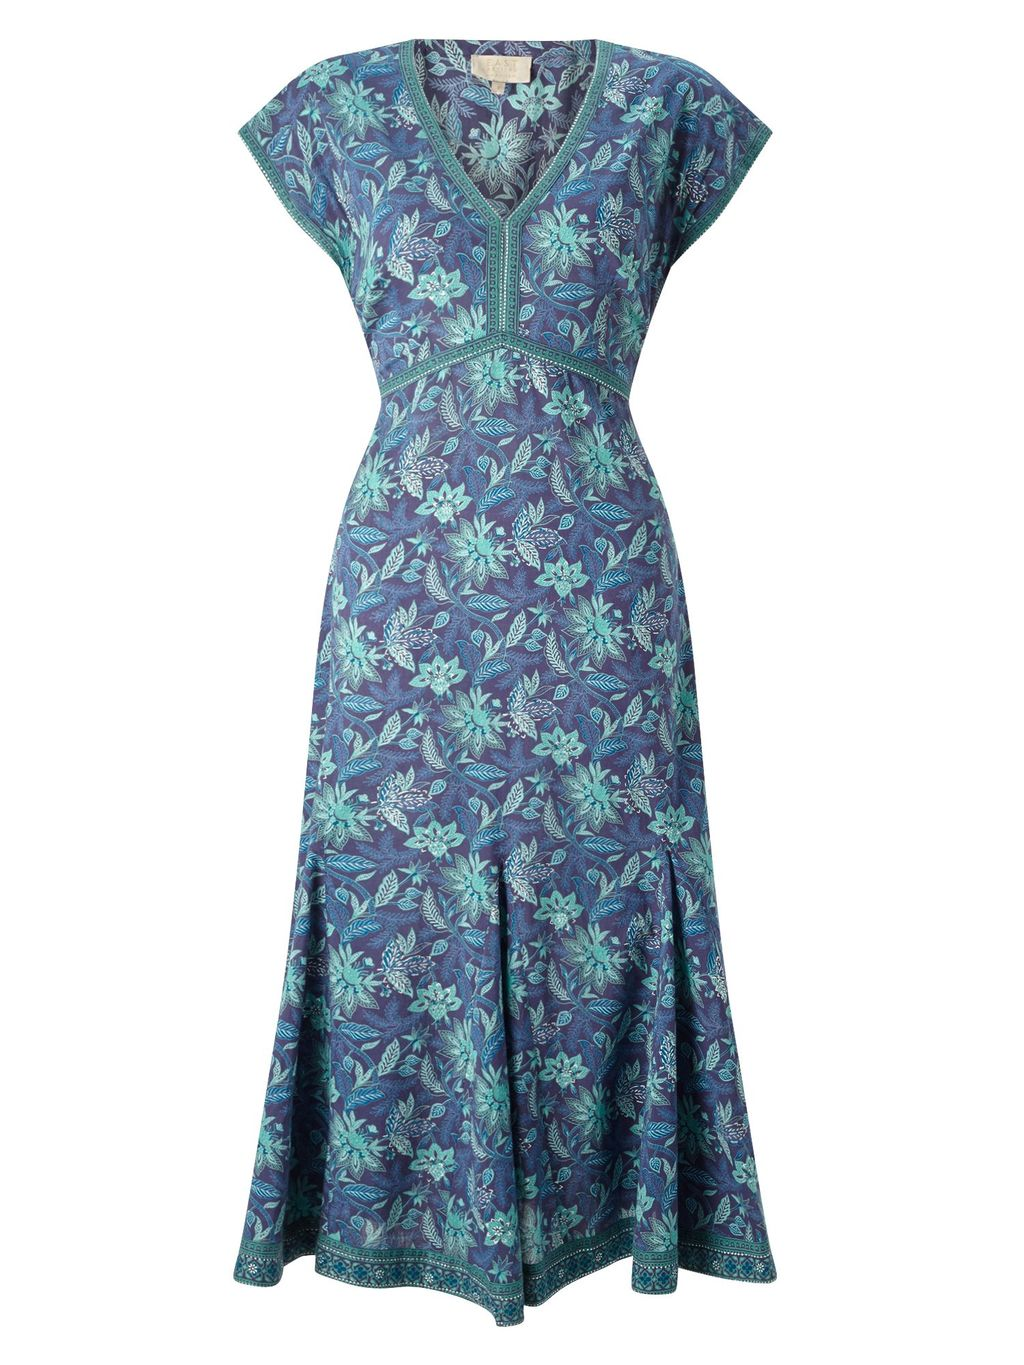 Anokhi Anatolia Dress, Green - style: tea dress; length: below the knee; neckline: v-neck; sleeve style: capped; predominant colour: denim; secondary colour: pistachio; occasions: evening; fit: soft a-line; fibres: cotton - 100%; sleeve length: short sleeve; texture group: cotton feel fabrics; pattern type: fabric; pattern size: big & busy; pattern: florals; multicoloured: multicoloured; season: s/s 2016; wardrobe: event